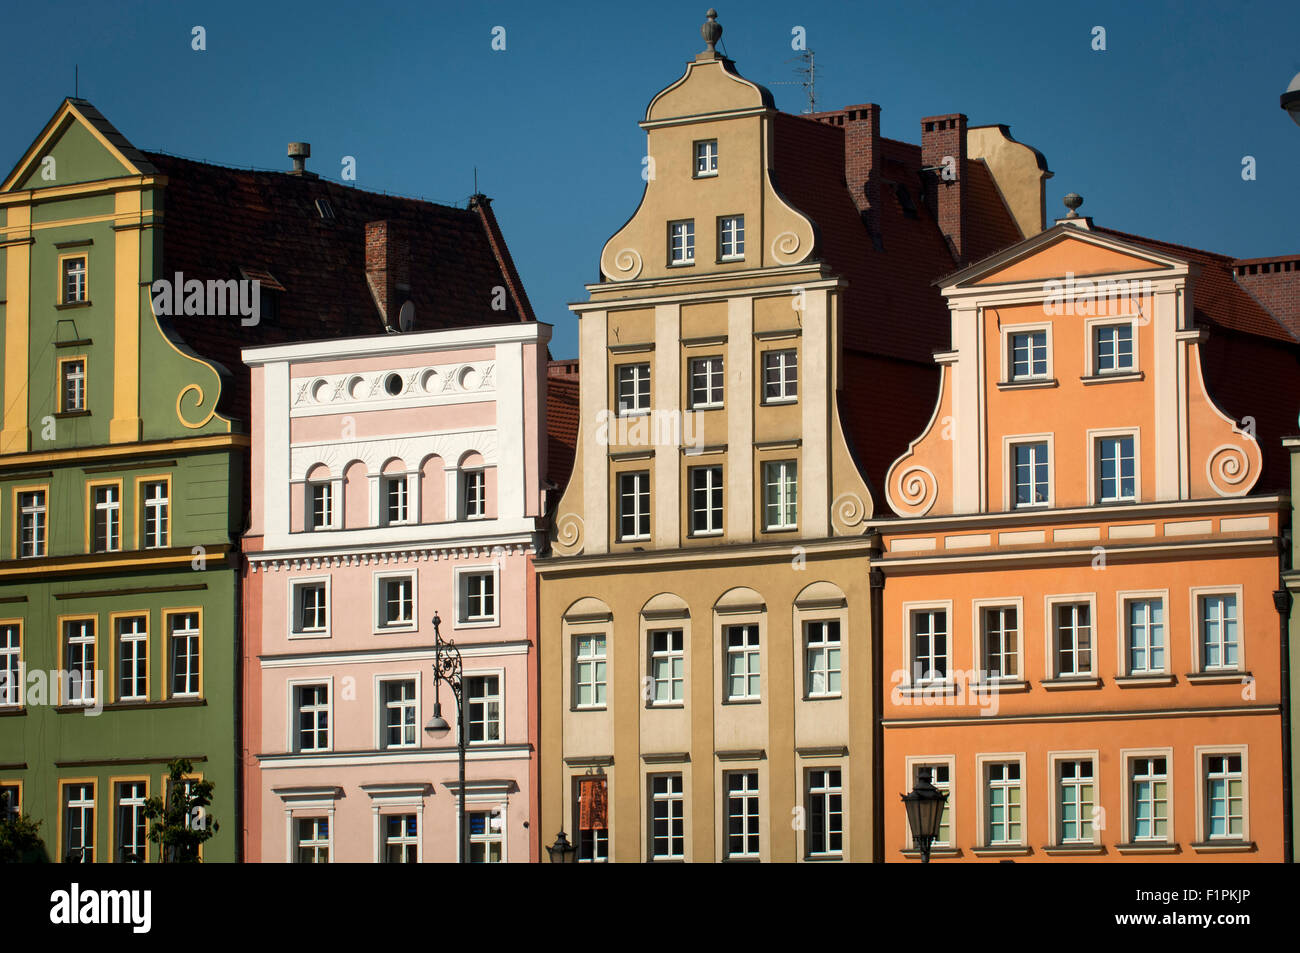 Houses in the Reynek,Wroclaw,Poland. - Stock Image